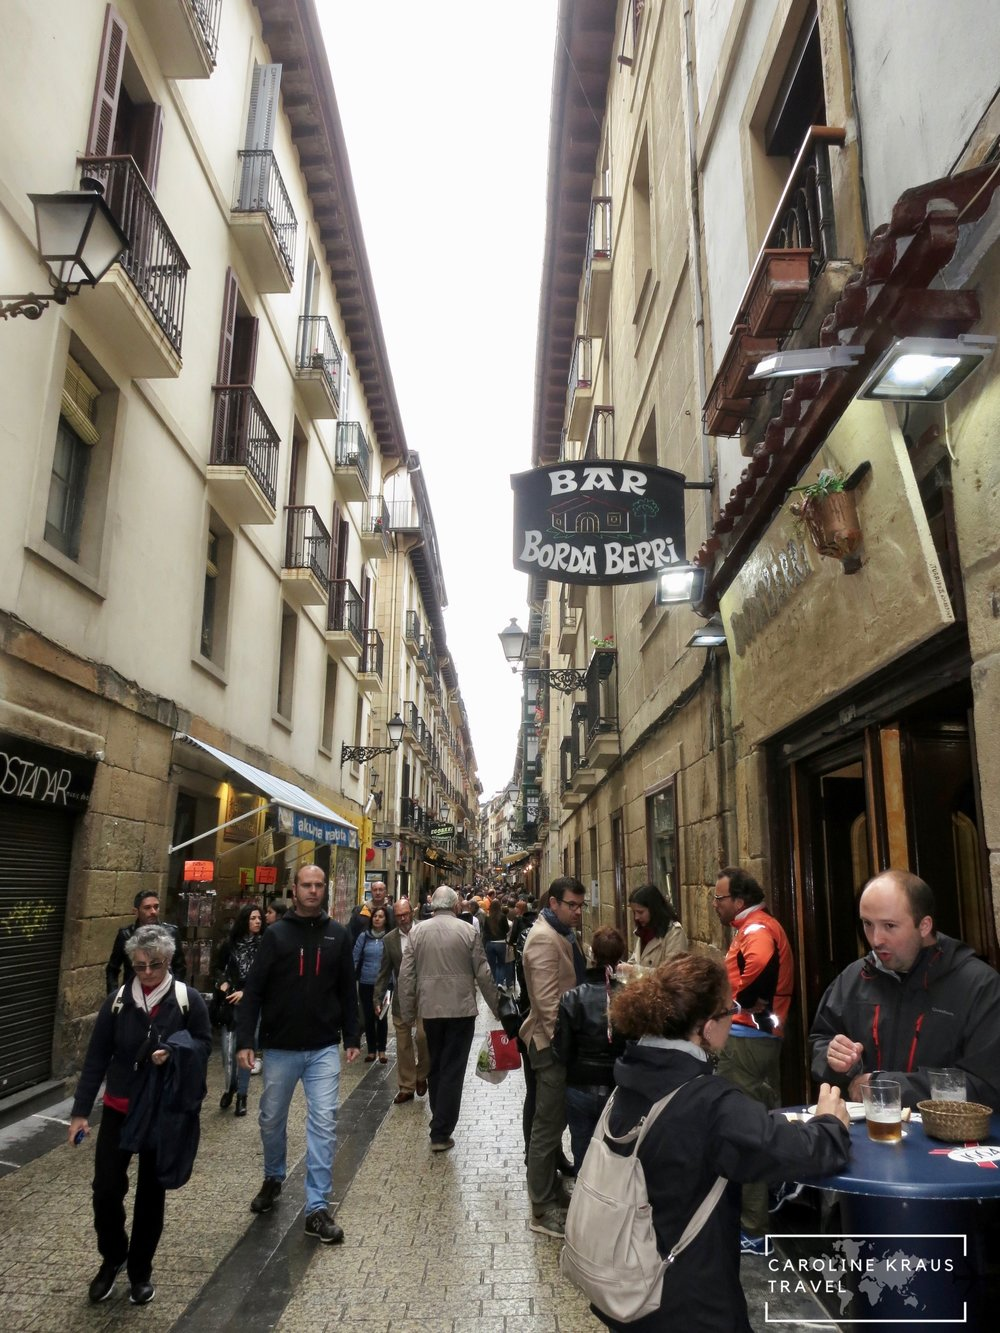 Pintxos bars on the streets of San Sebastian, Spain